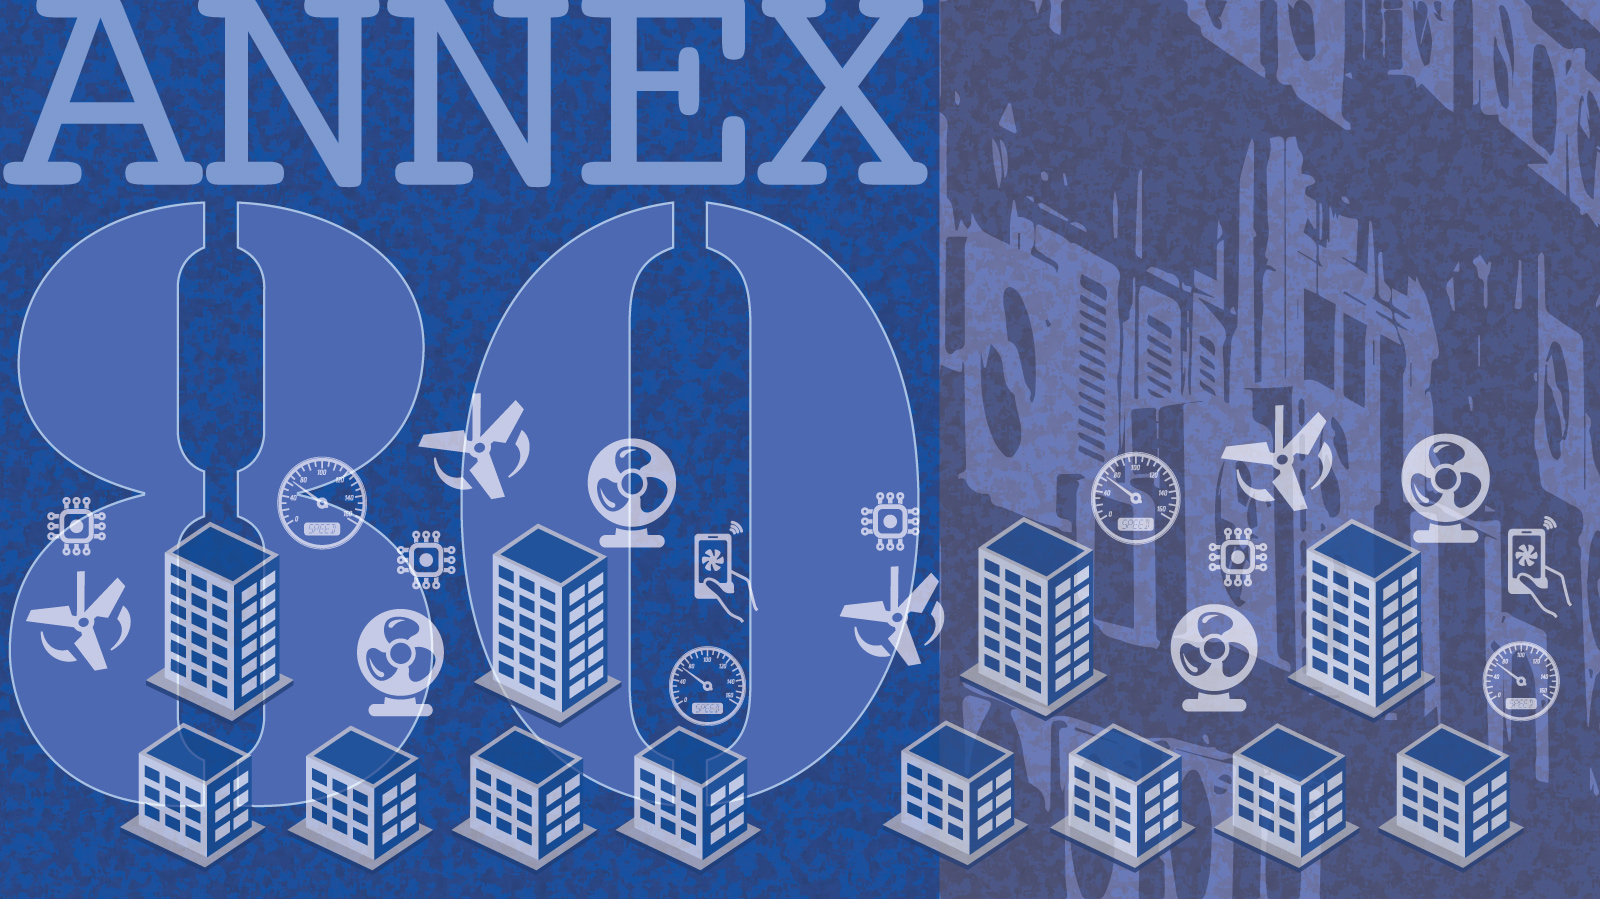 Annex 80 graphic